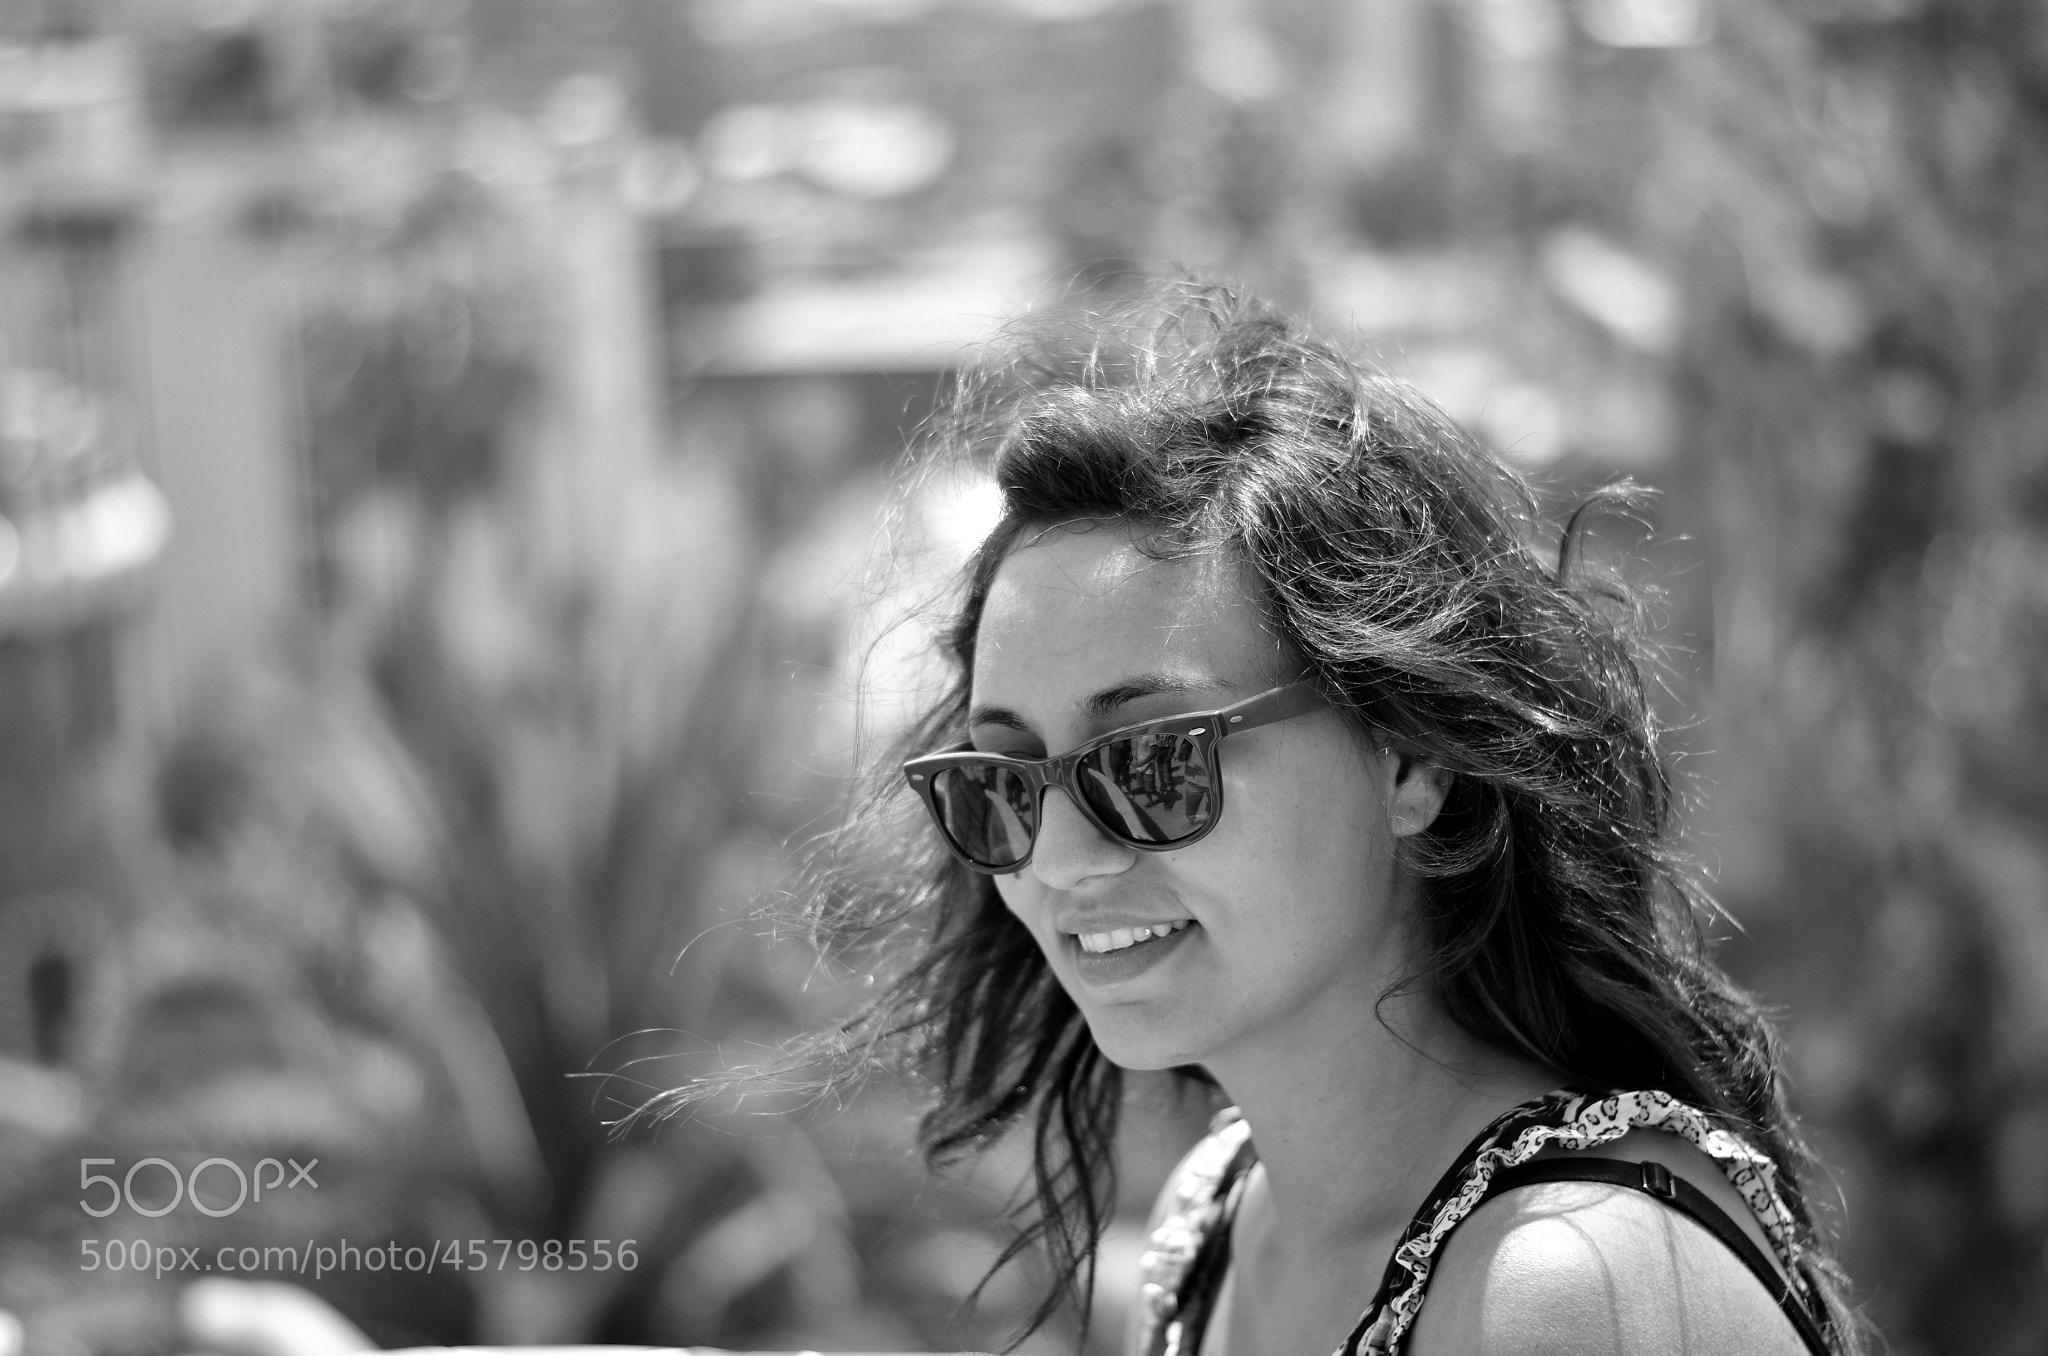 Photograph People of Barcelona by Teo Gasparovic on 500px